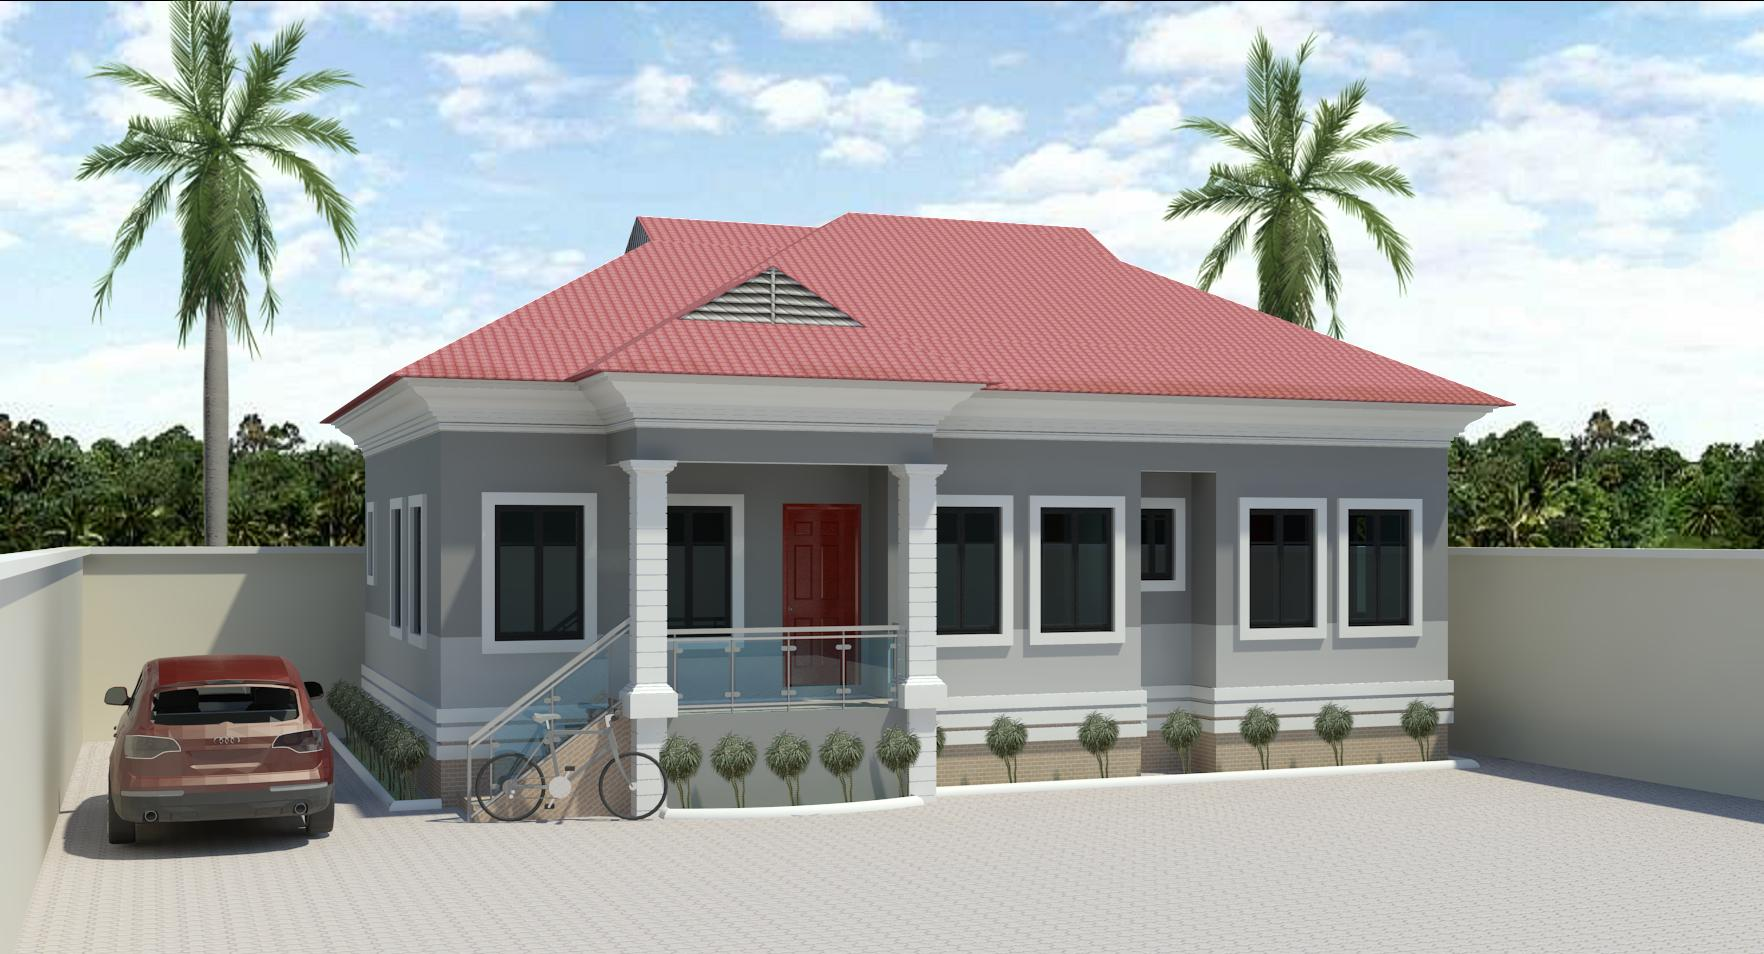 3bedroom bungalow designs in nigeria joy studio design Bungalow house plans 3 bedrooms